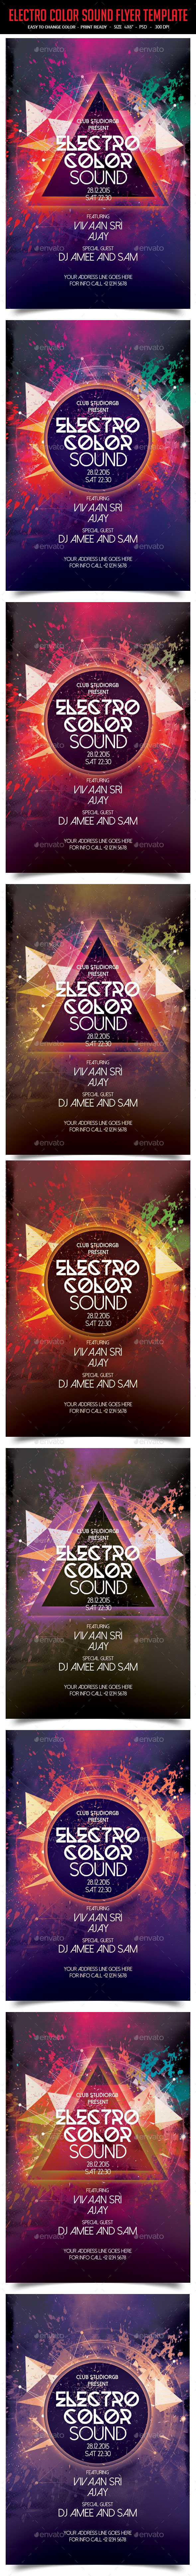 GraphicRiver Electro Color Sound Flyer Template 10919768